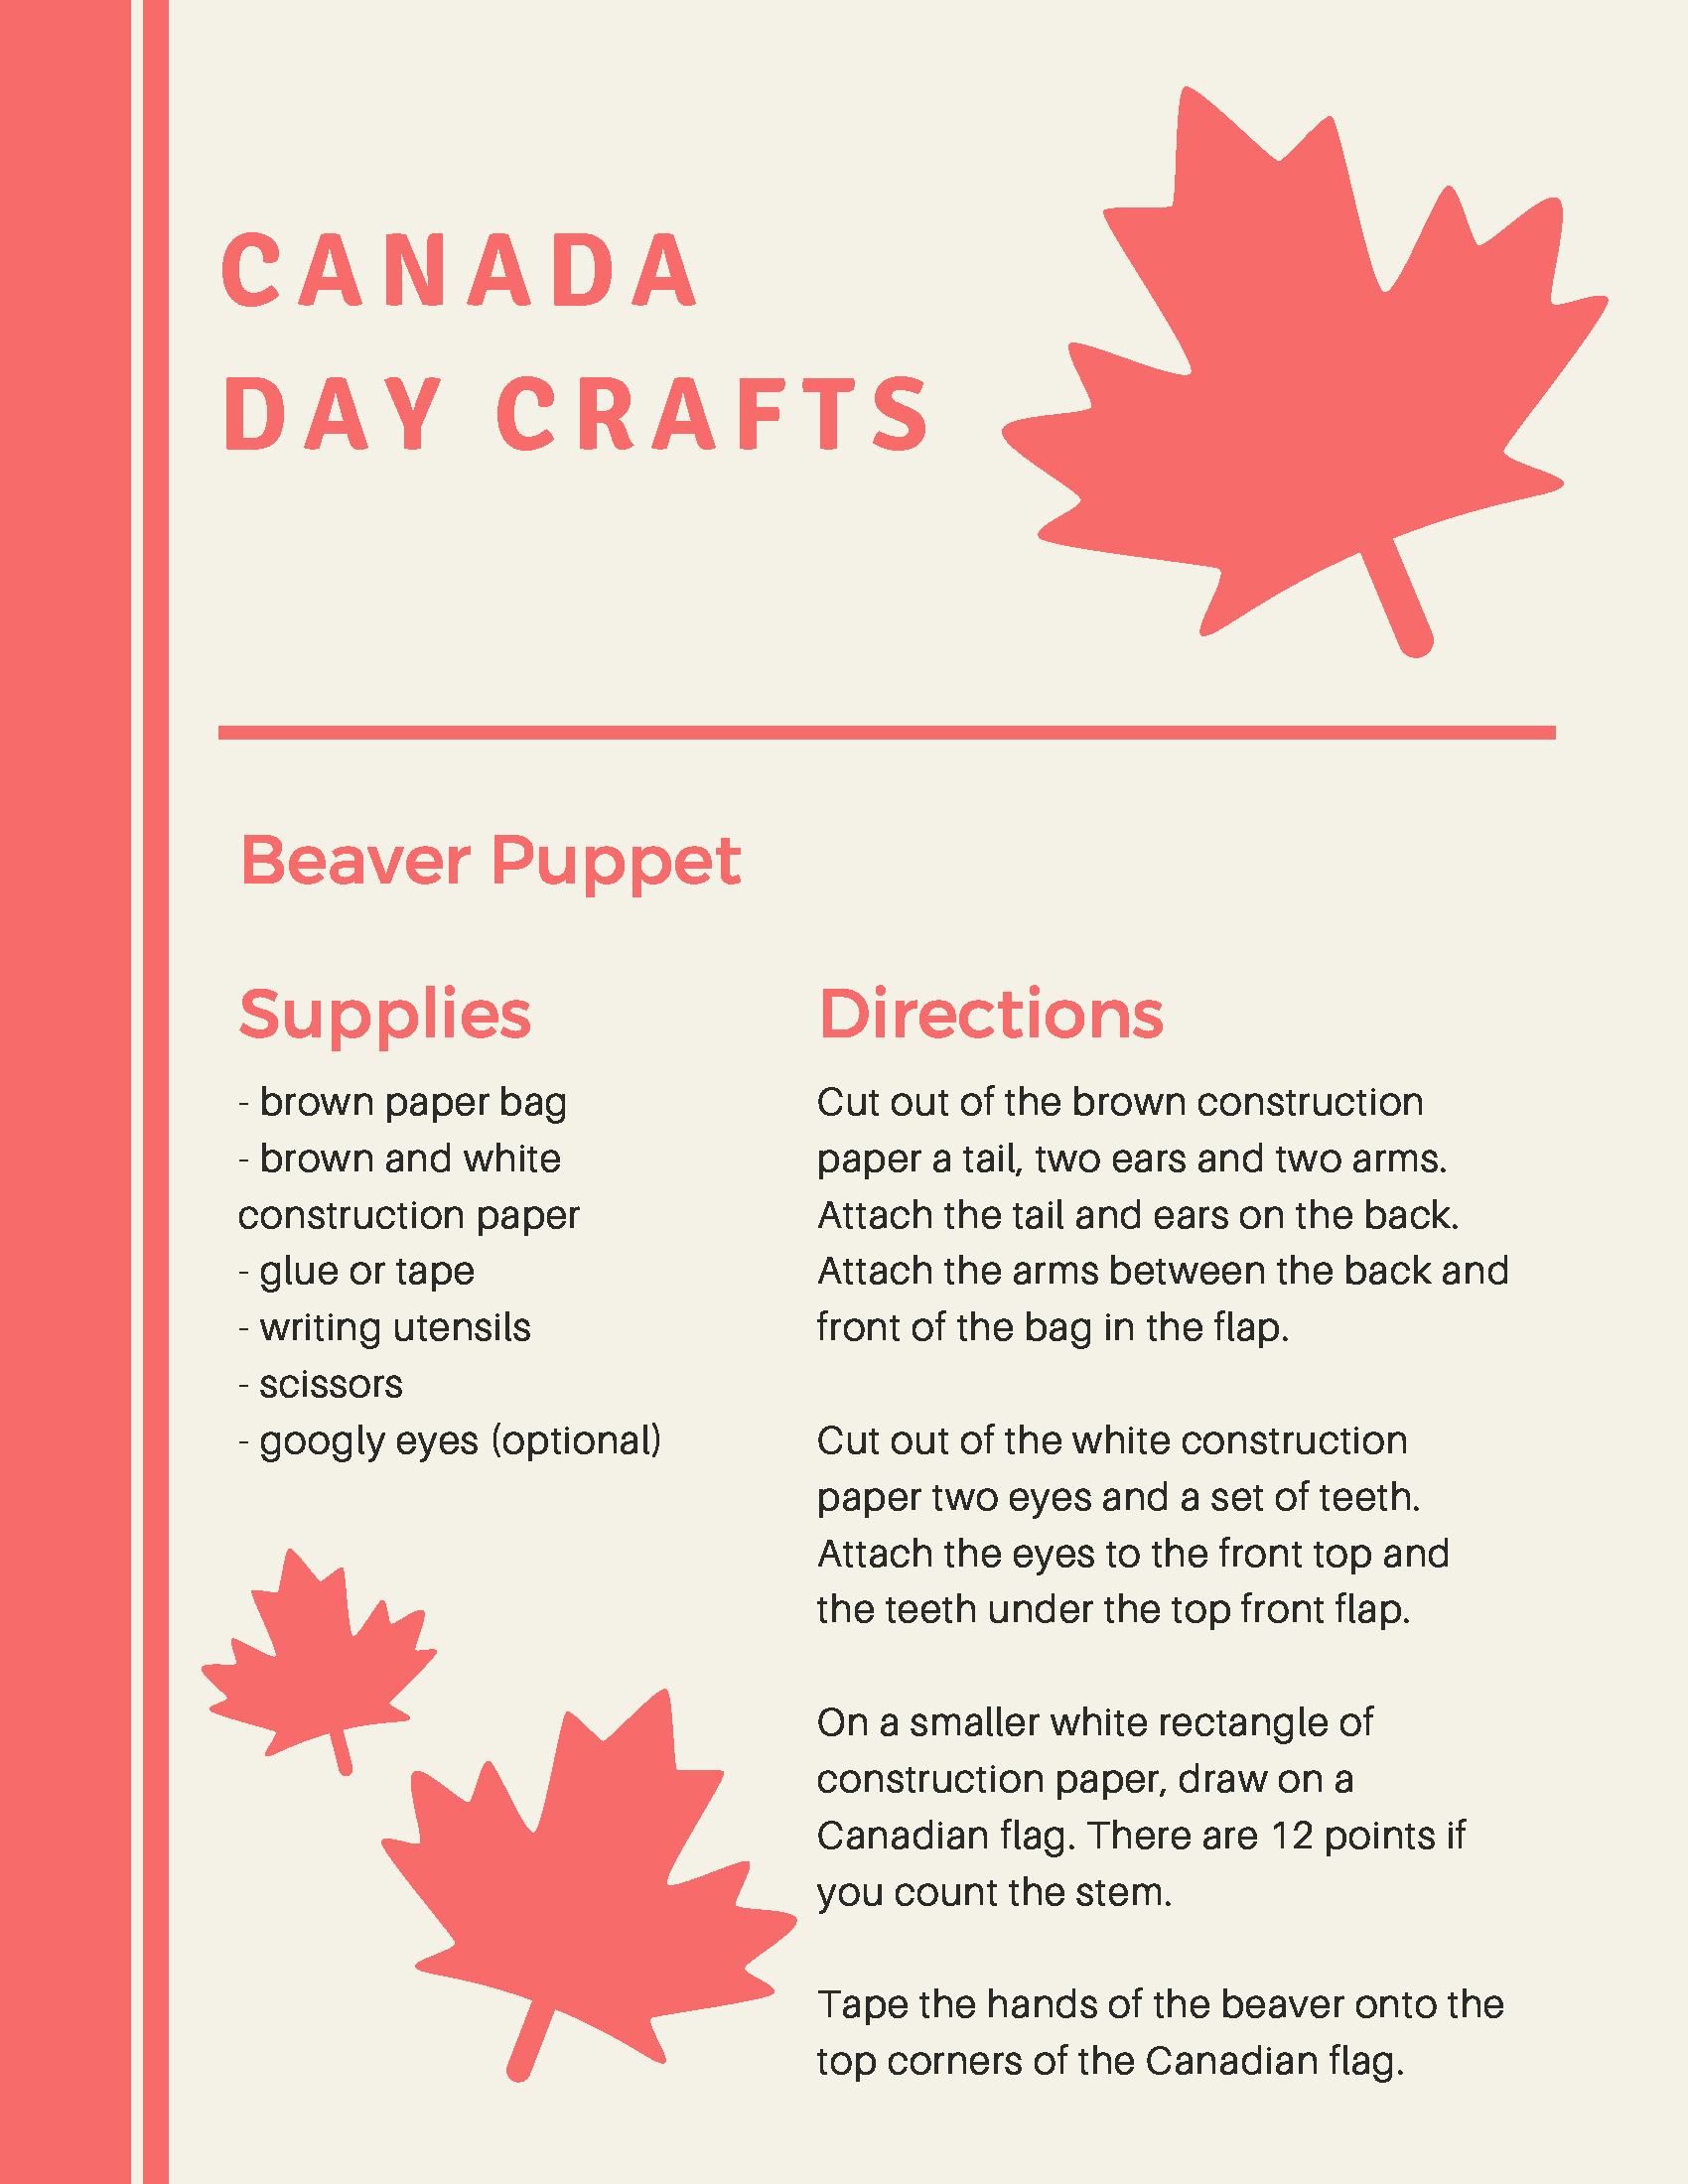 Canada Day Crafts 2020 (2)